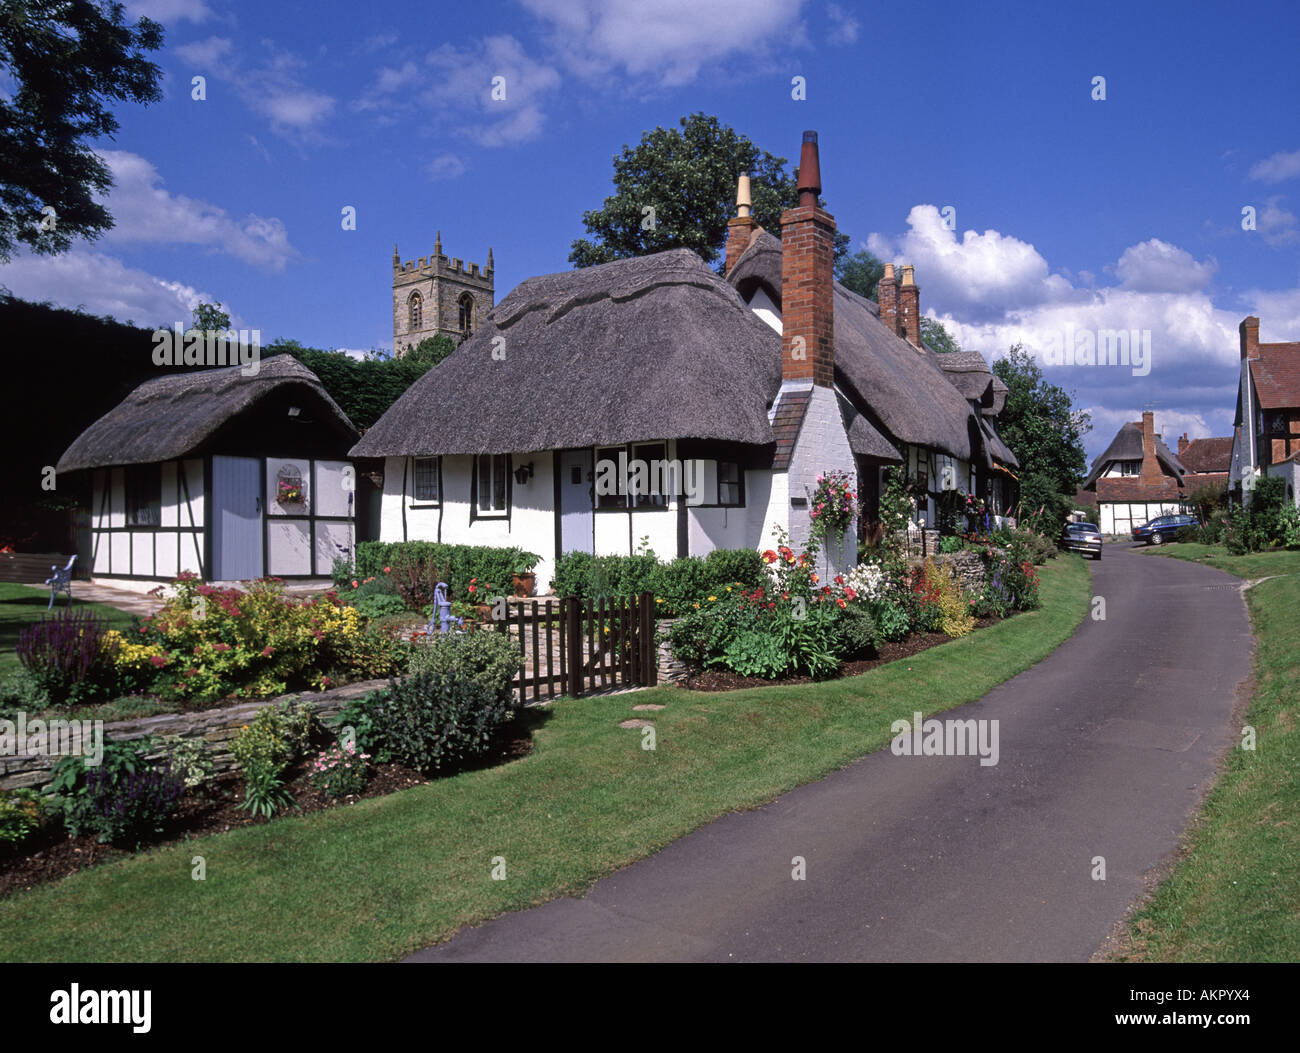 Welford On Avon Warwickshire village thatched cottage with church tower beyond some cables aerials & similar digitally removed - Stock Image